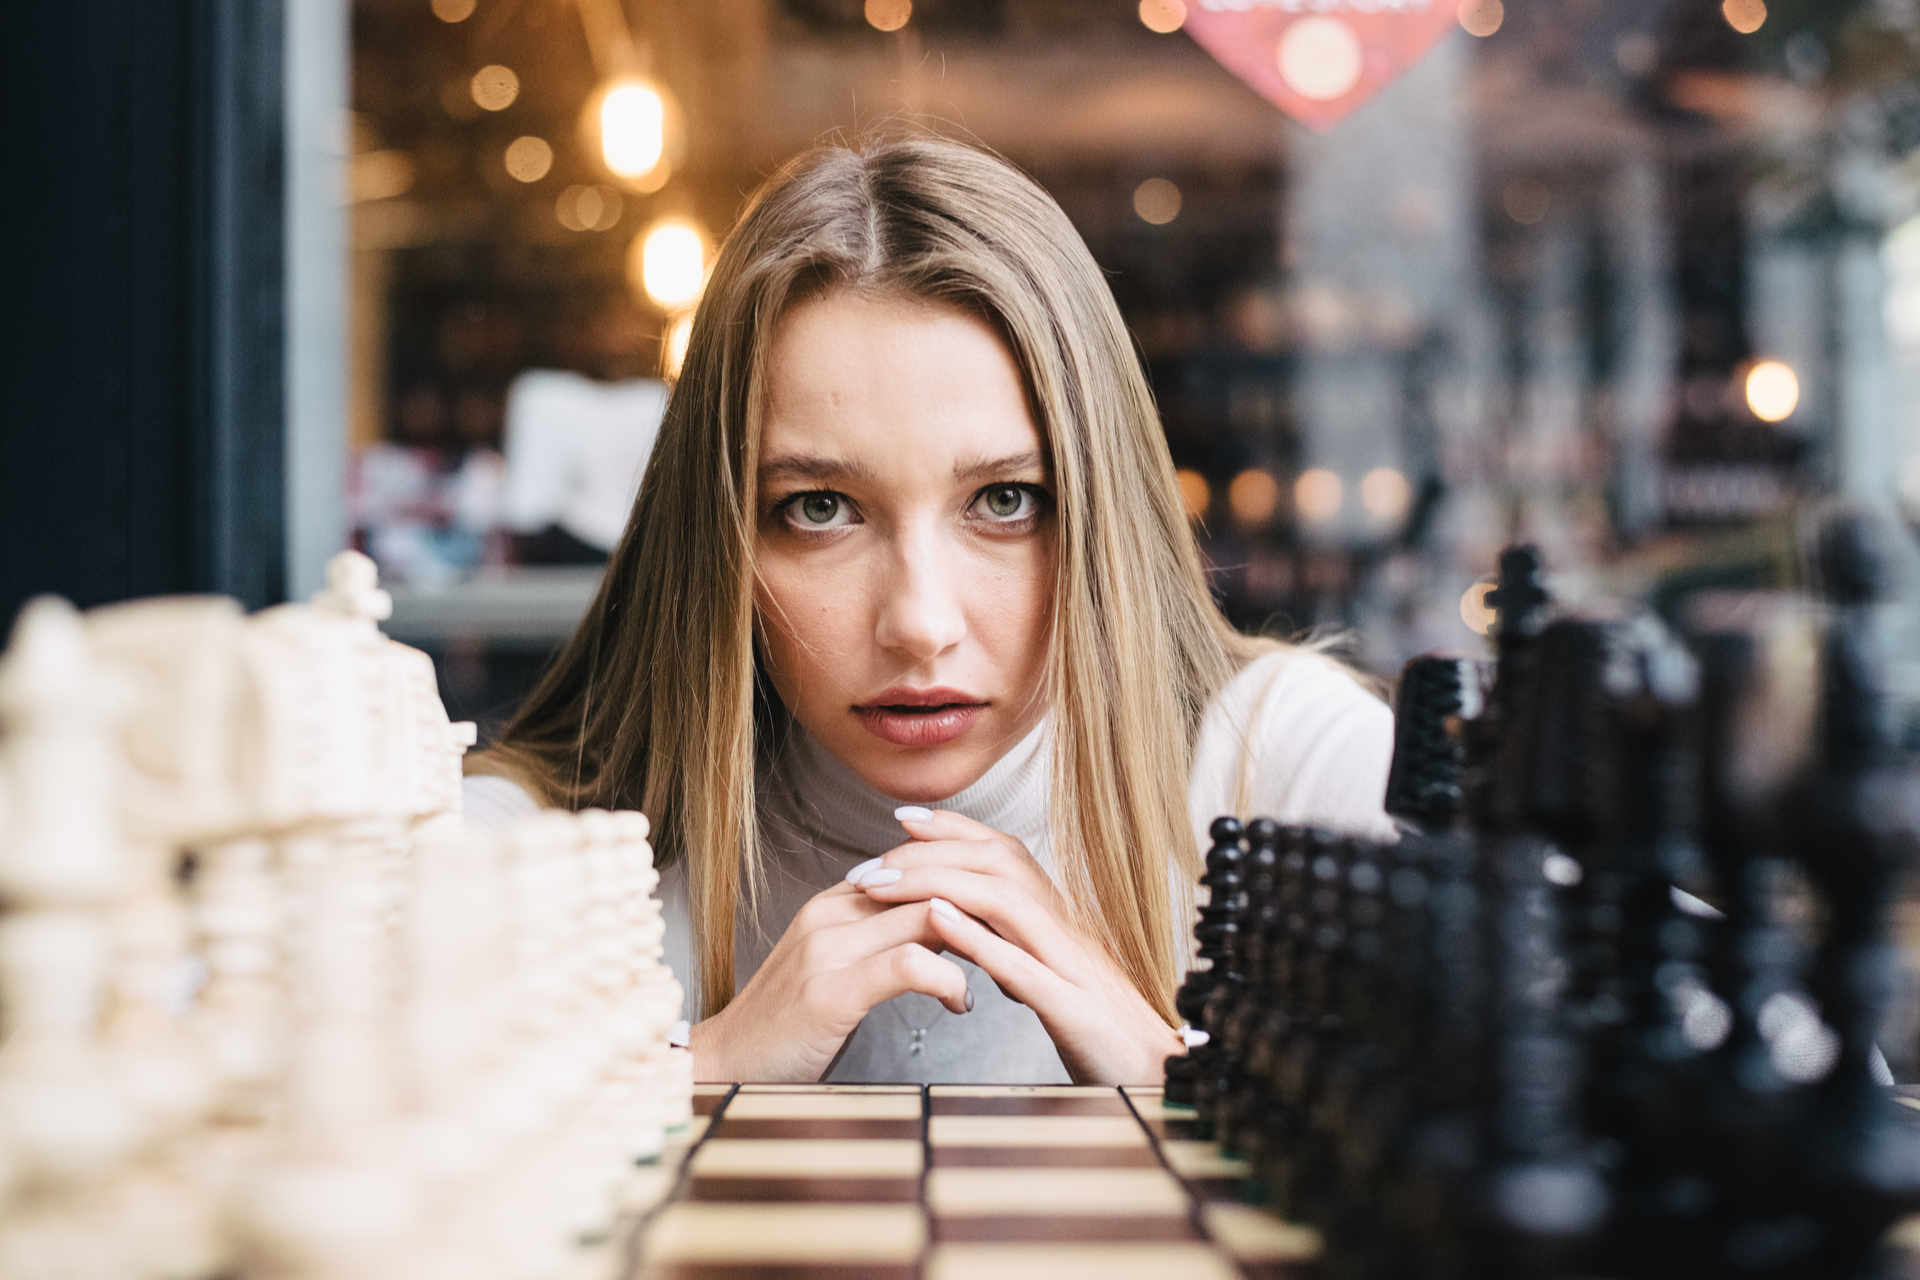 White and black chess pieces are displayed on the board in front of focused woman